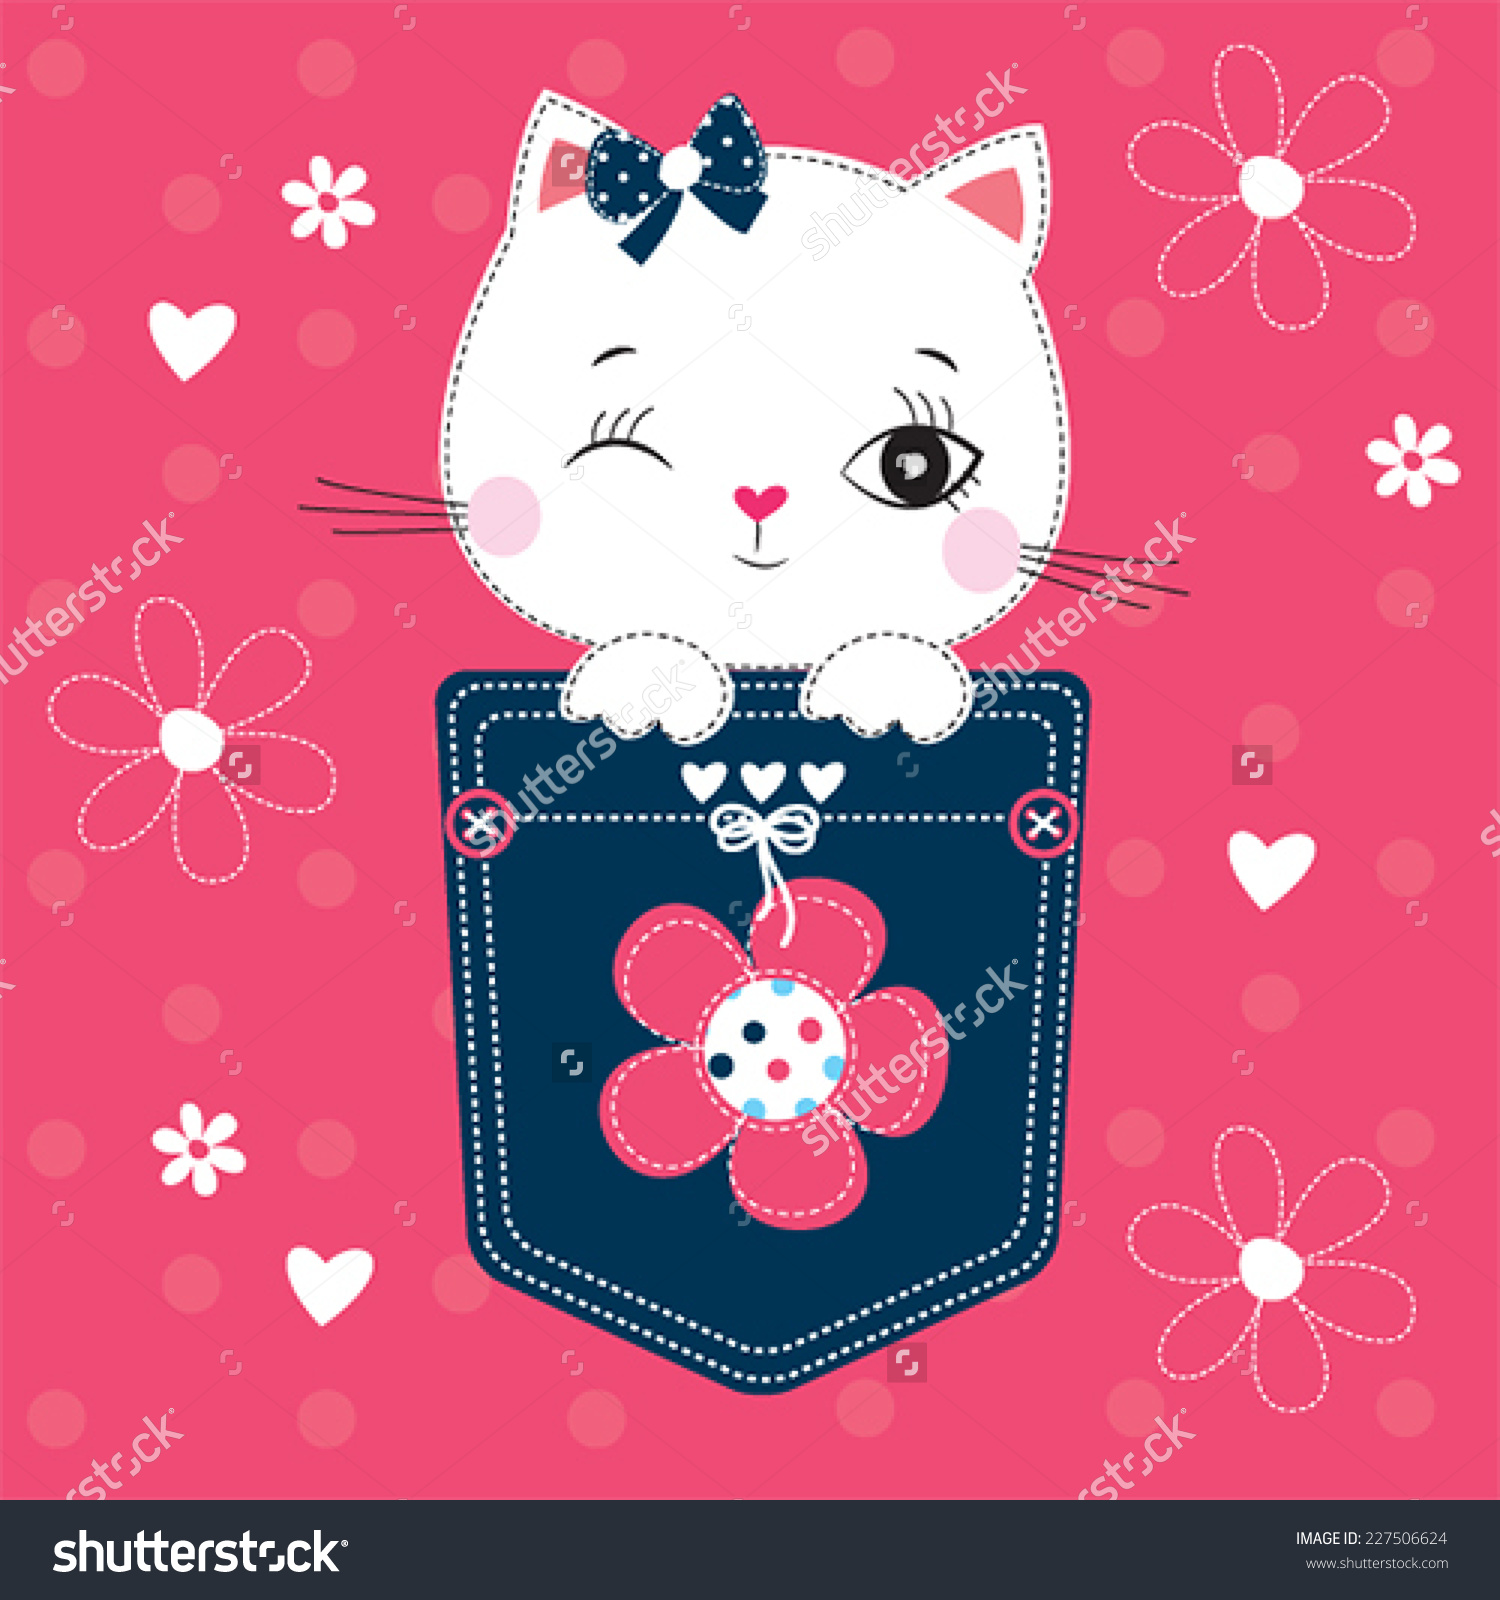 Cute White Cat In The Pocket Vector Illustration.